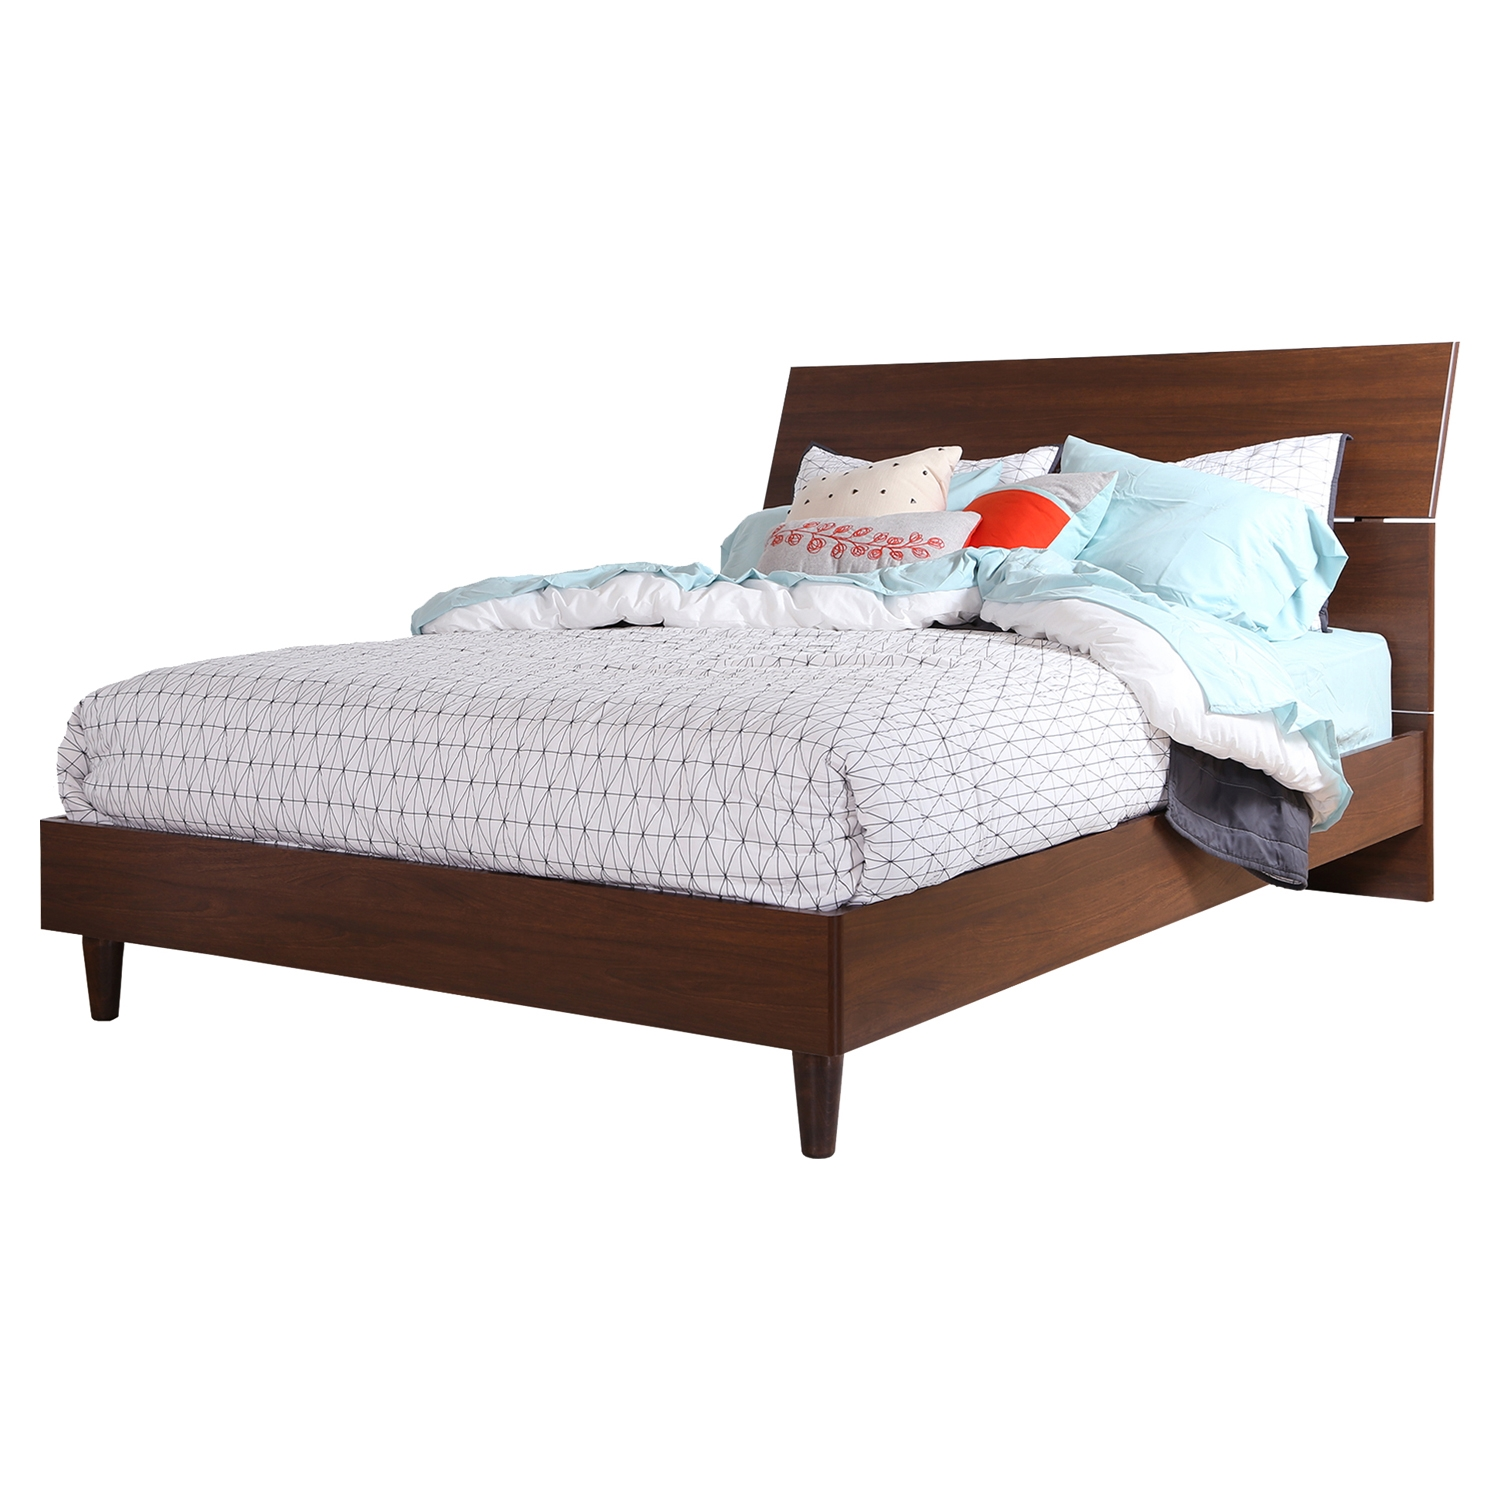 Olly Queen Platform Bed - Headboard, Brown Walnut